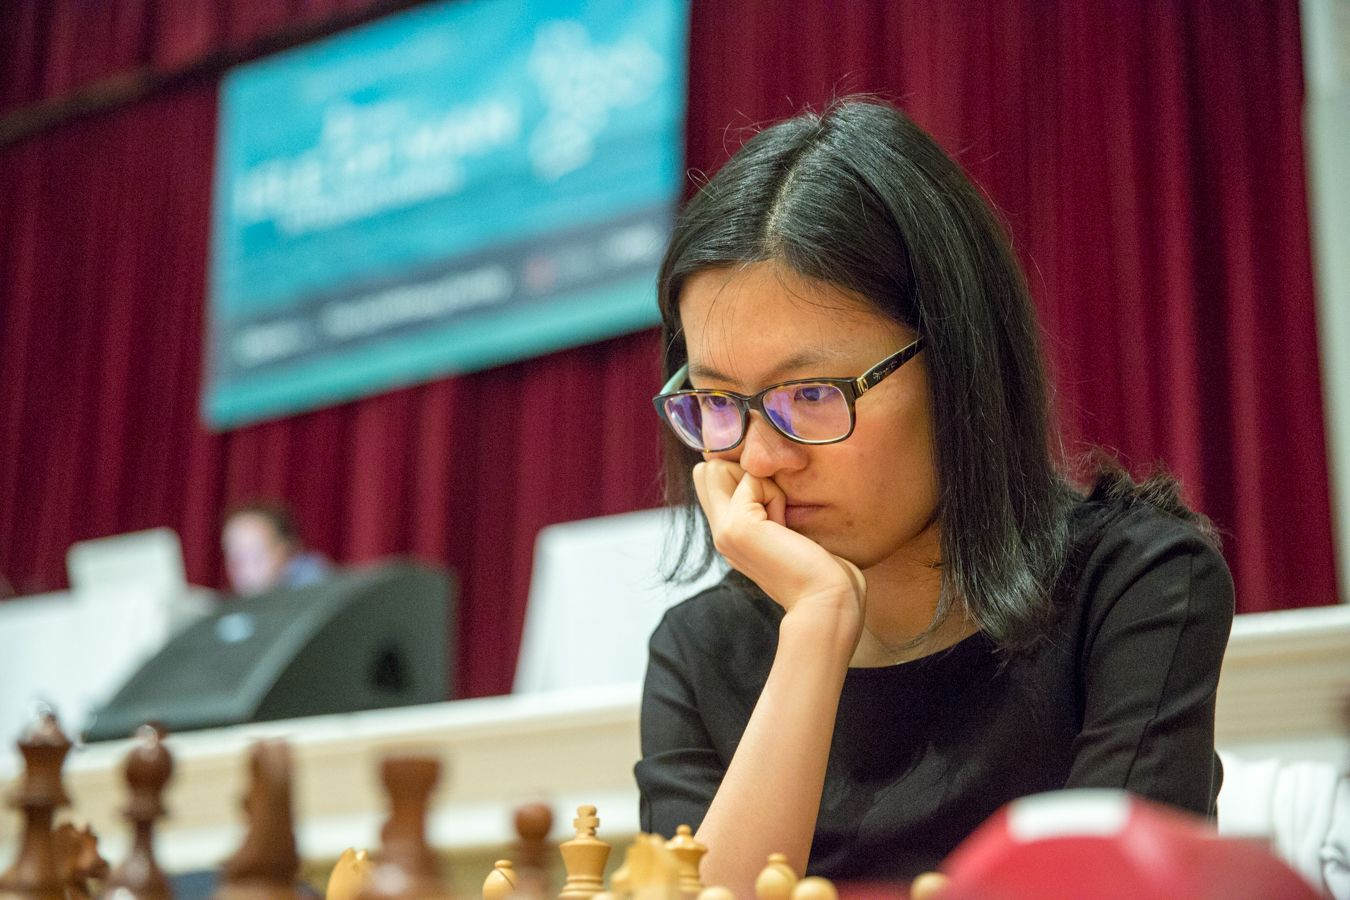 Hou Yifan. Photo: Maria Emelianova / Chess.com.